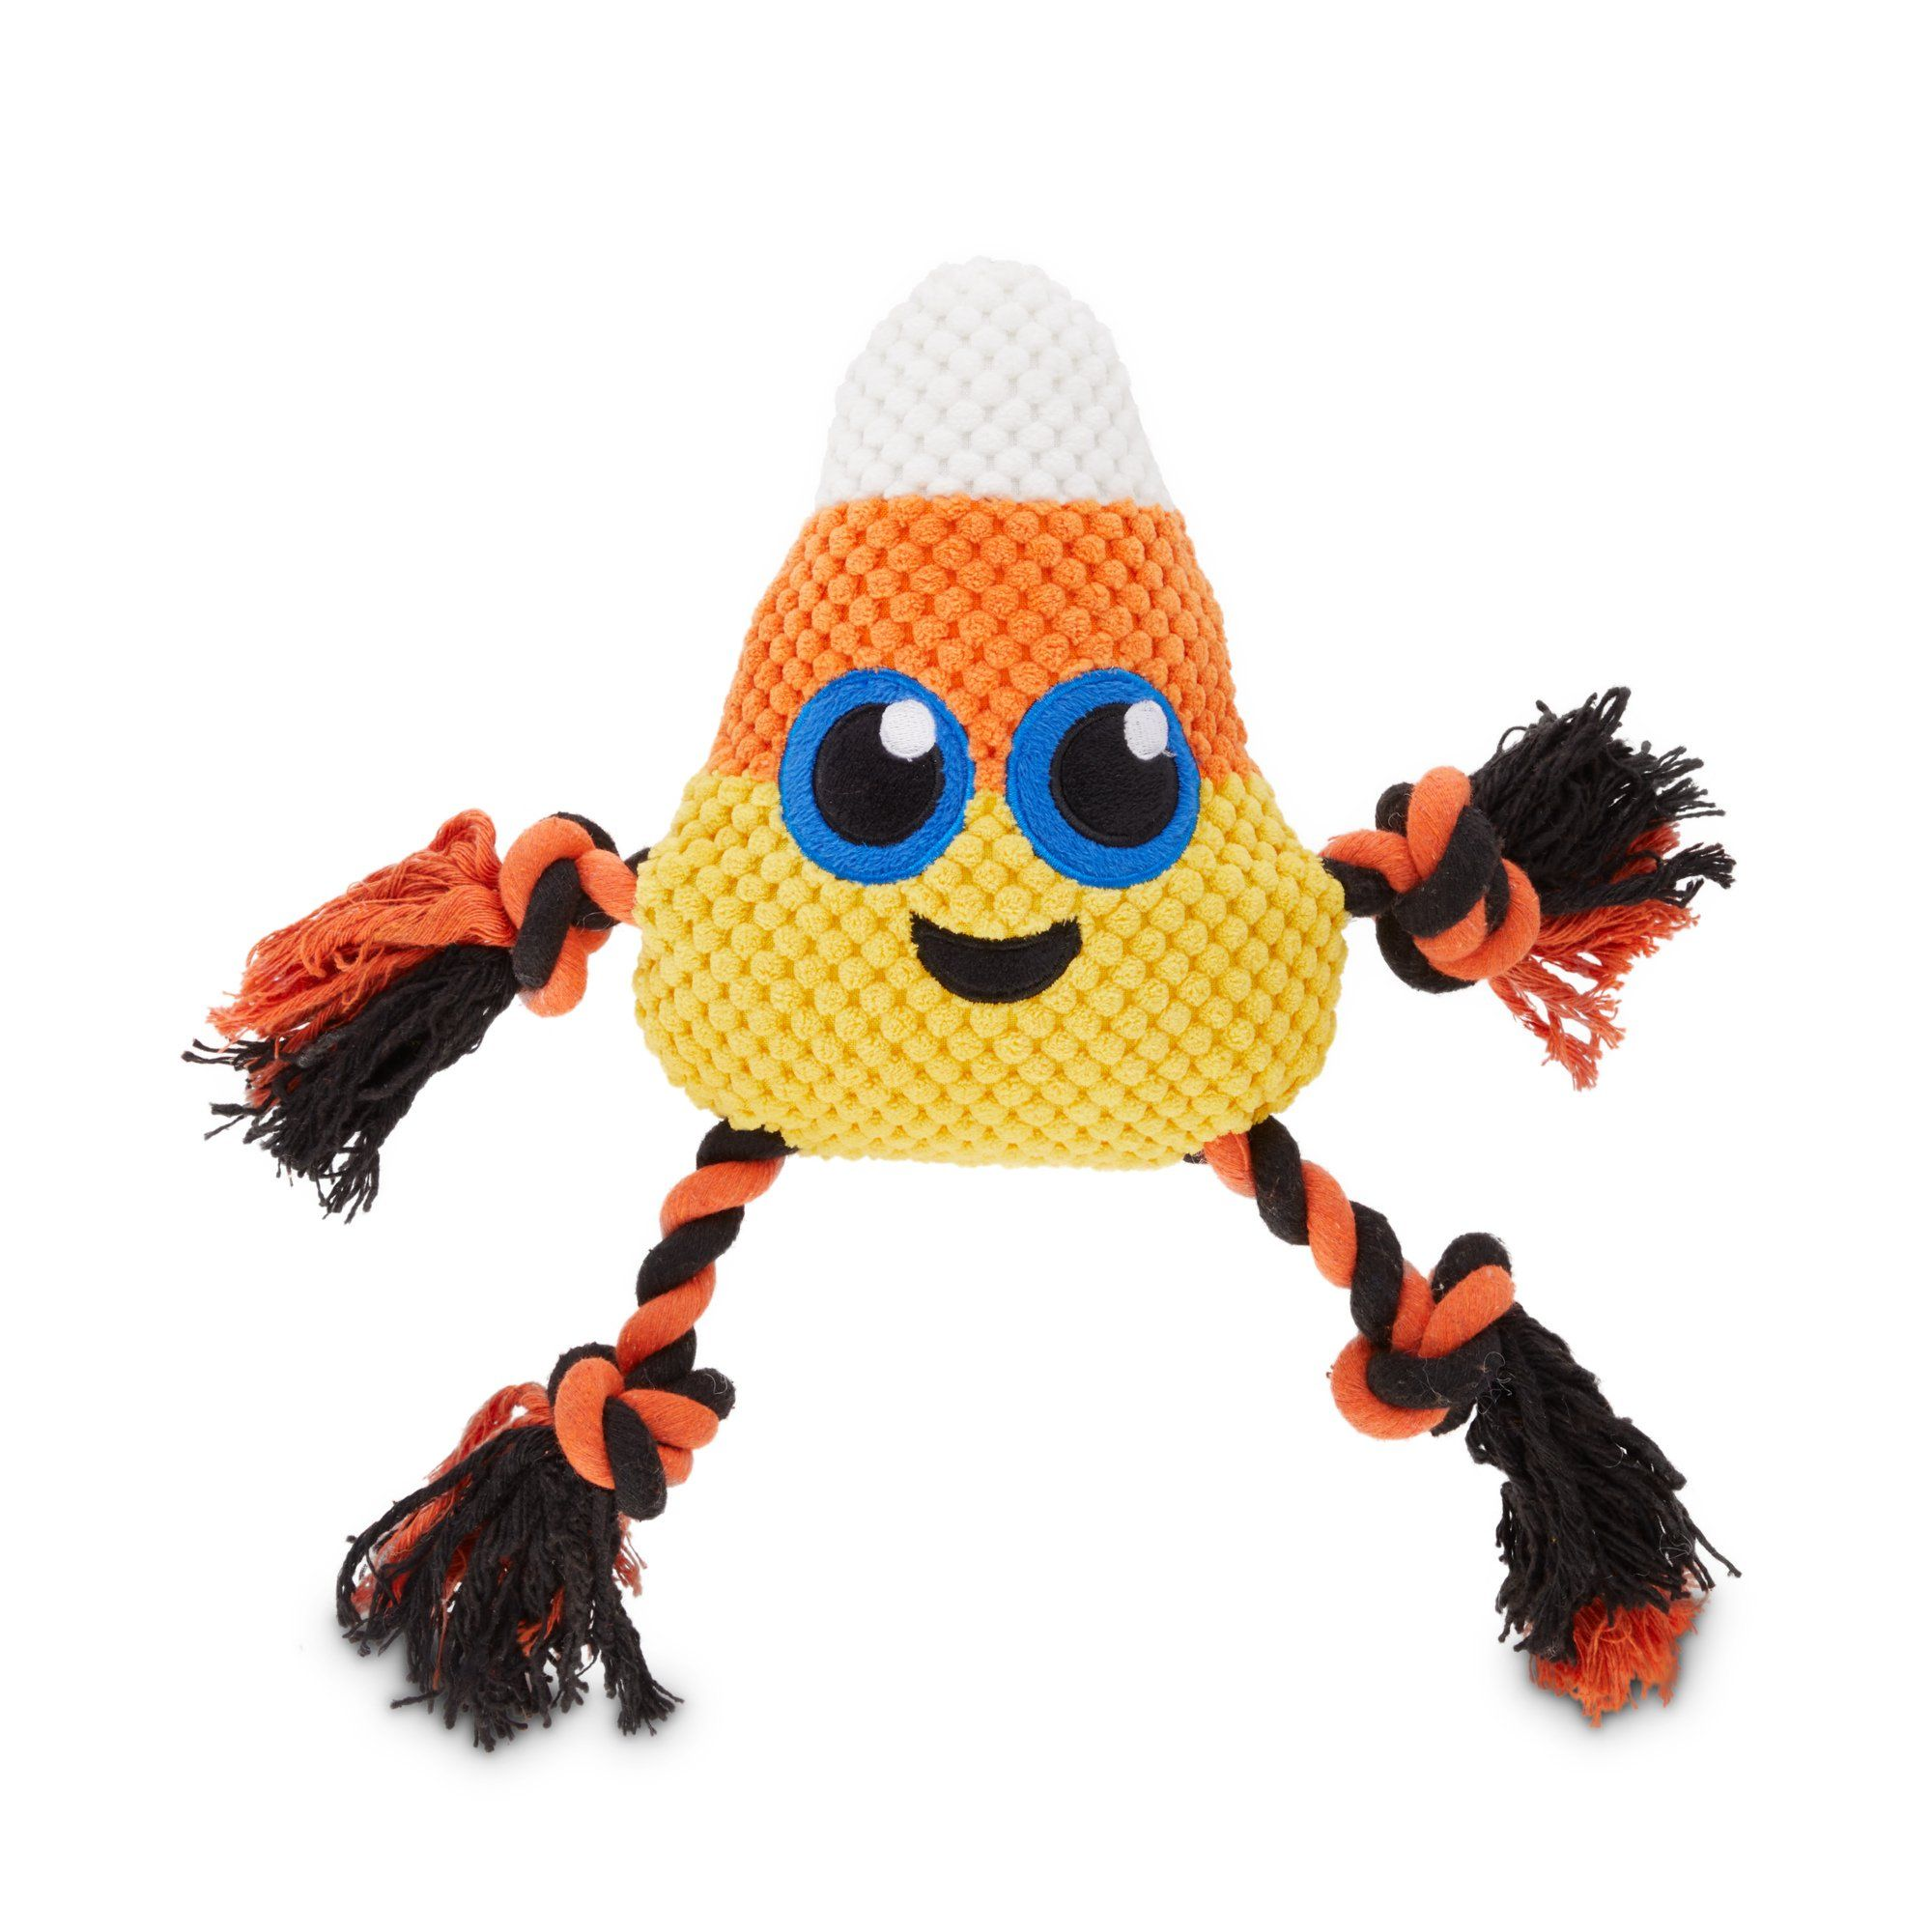 Bootique Candy Corn Plush And Rope Dog Toy Medium Dog Toys Candy Corn Dog Hacks